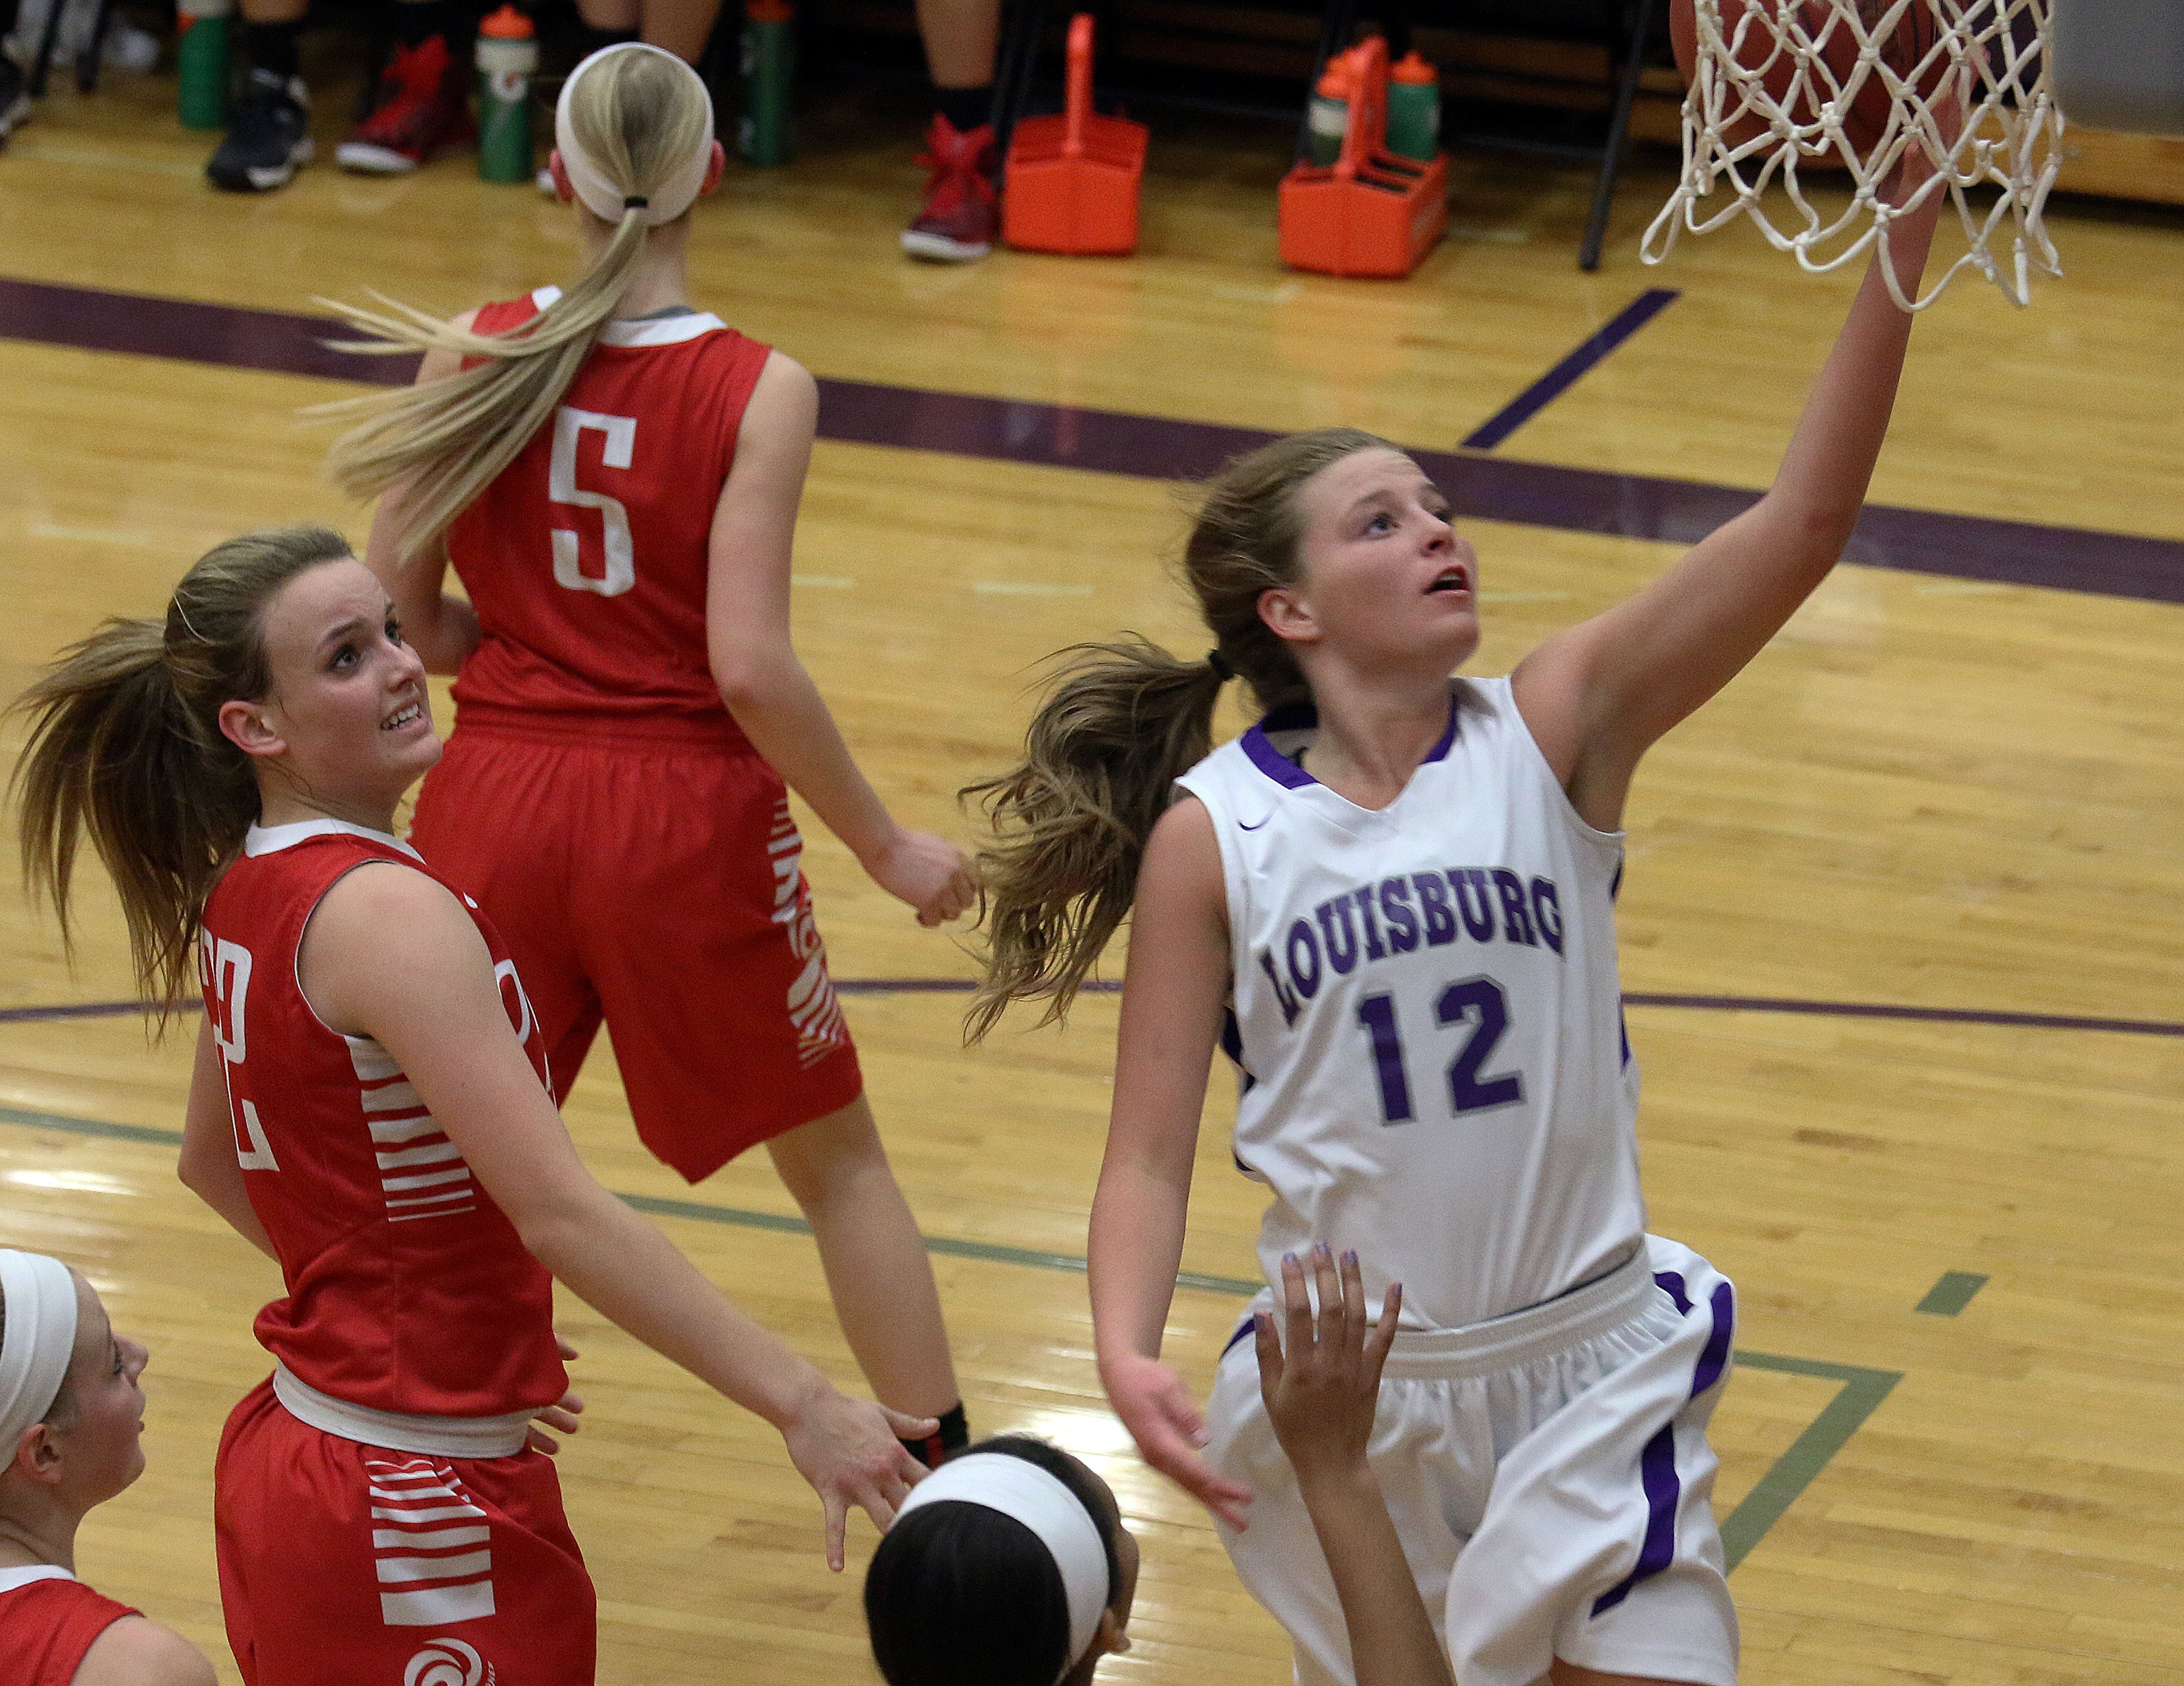 Louisburg junior Natalie Moore drives past an Ottawa player to the basket Friday in Louisburg. Moore finished with 27 points in the 60-51 loss